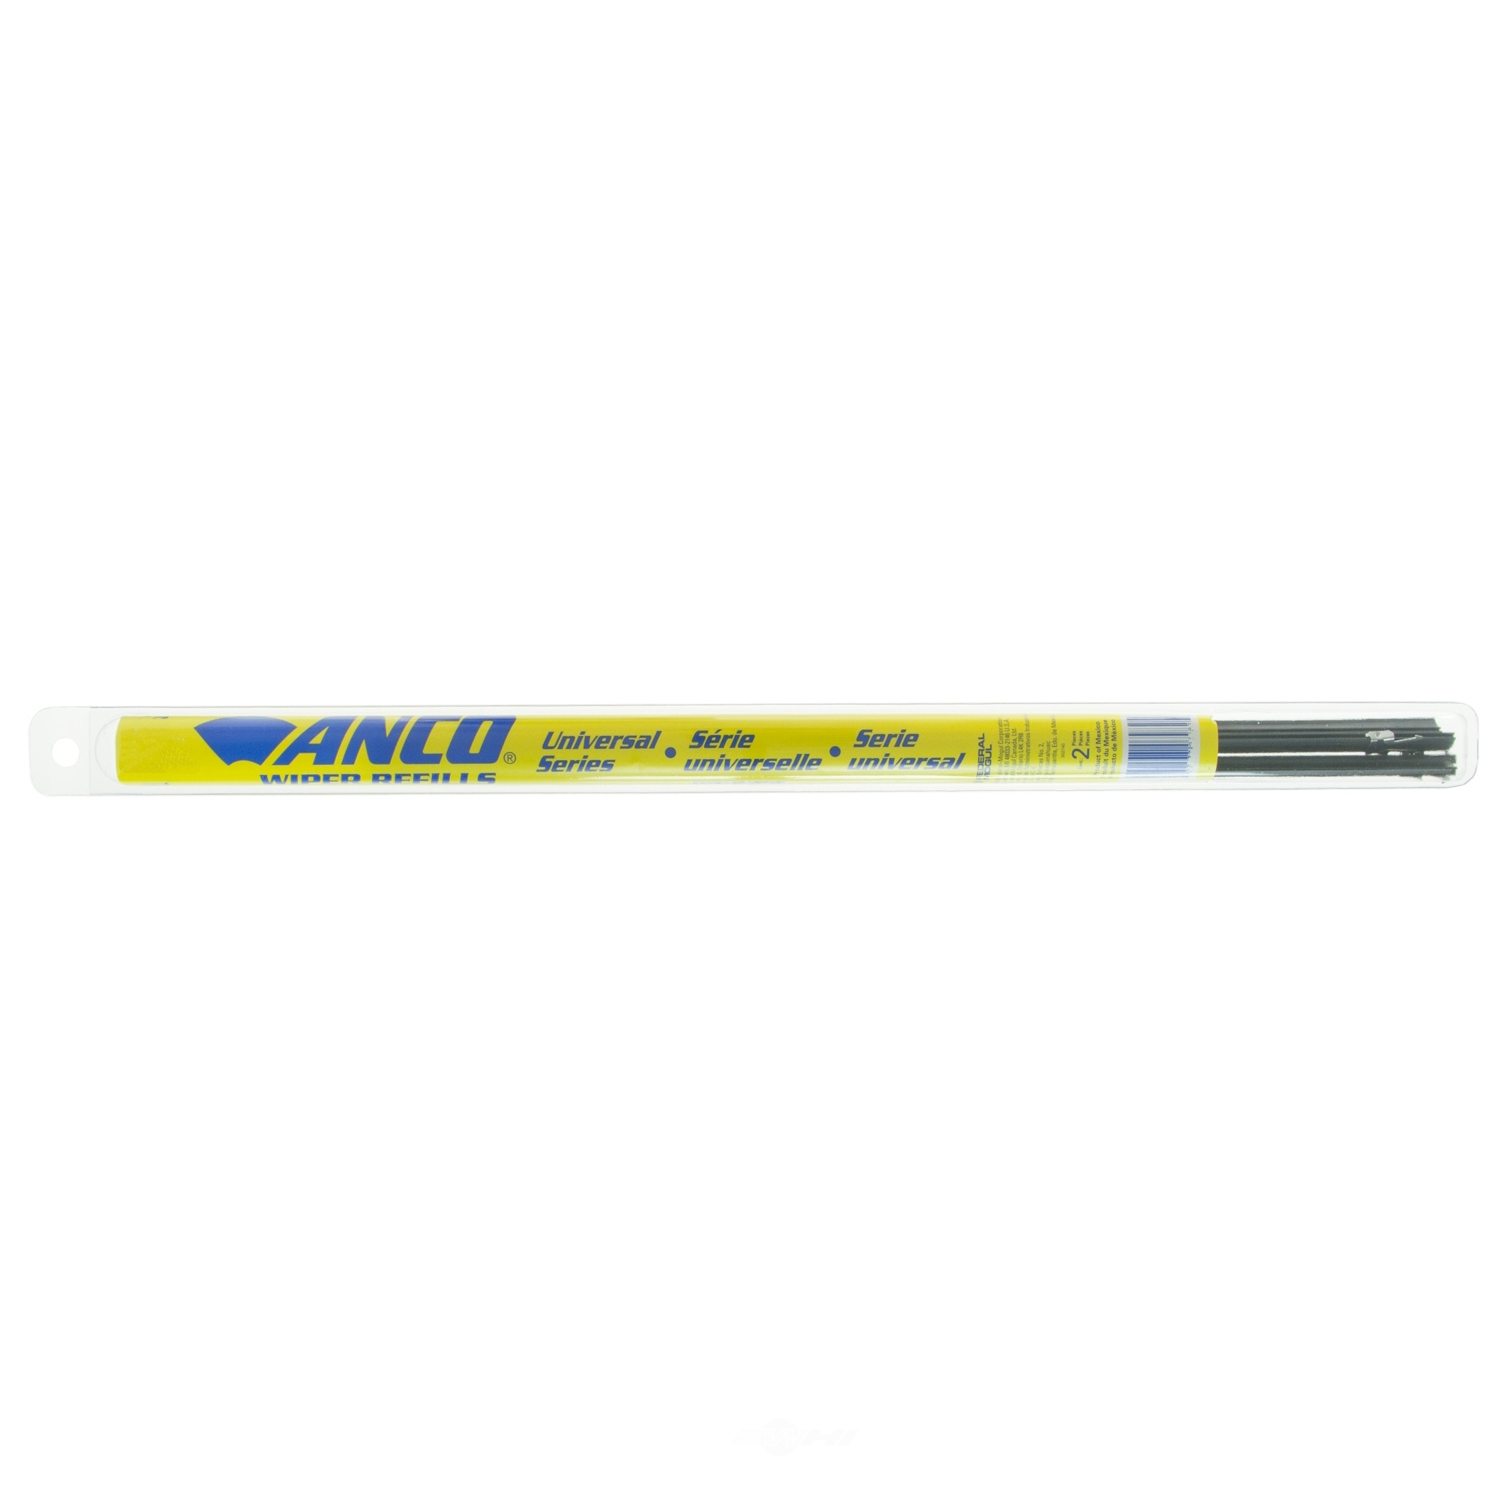 ANCO WIPER PRODUCTS - Universal Series Refills - ANC U-15R